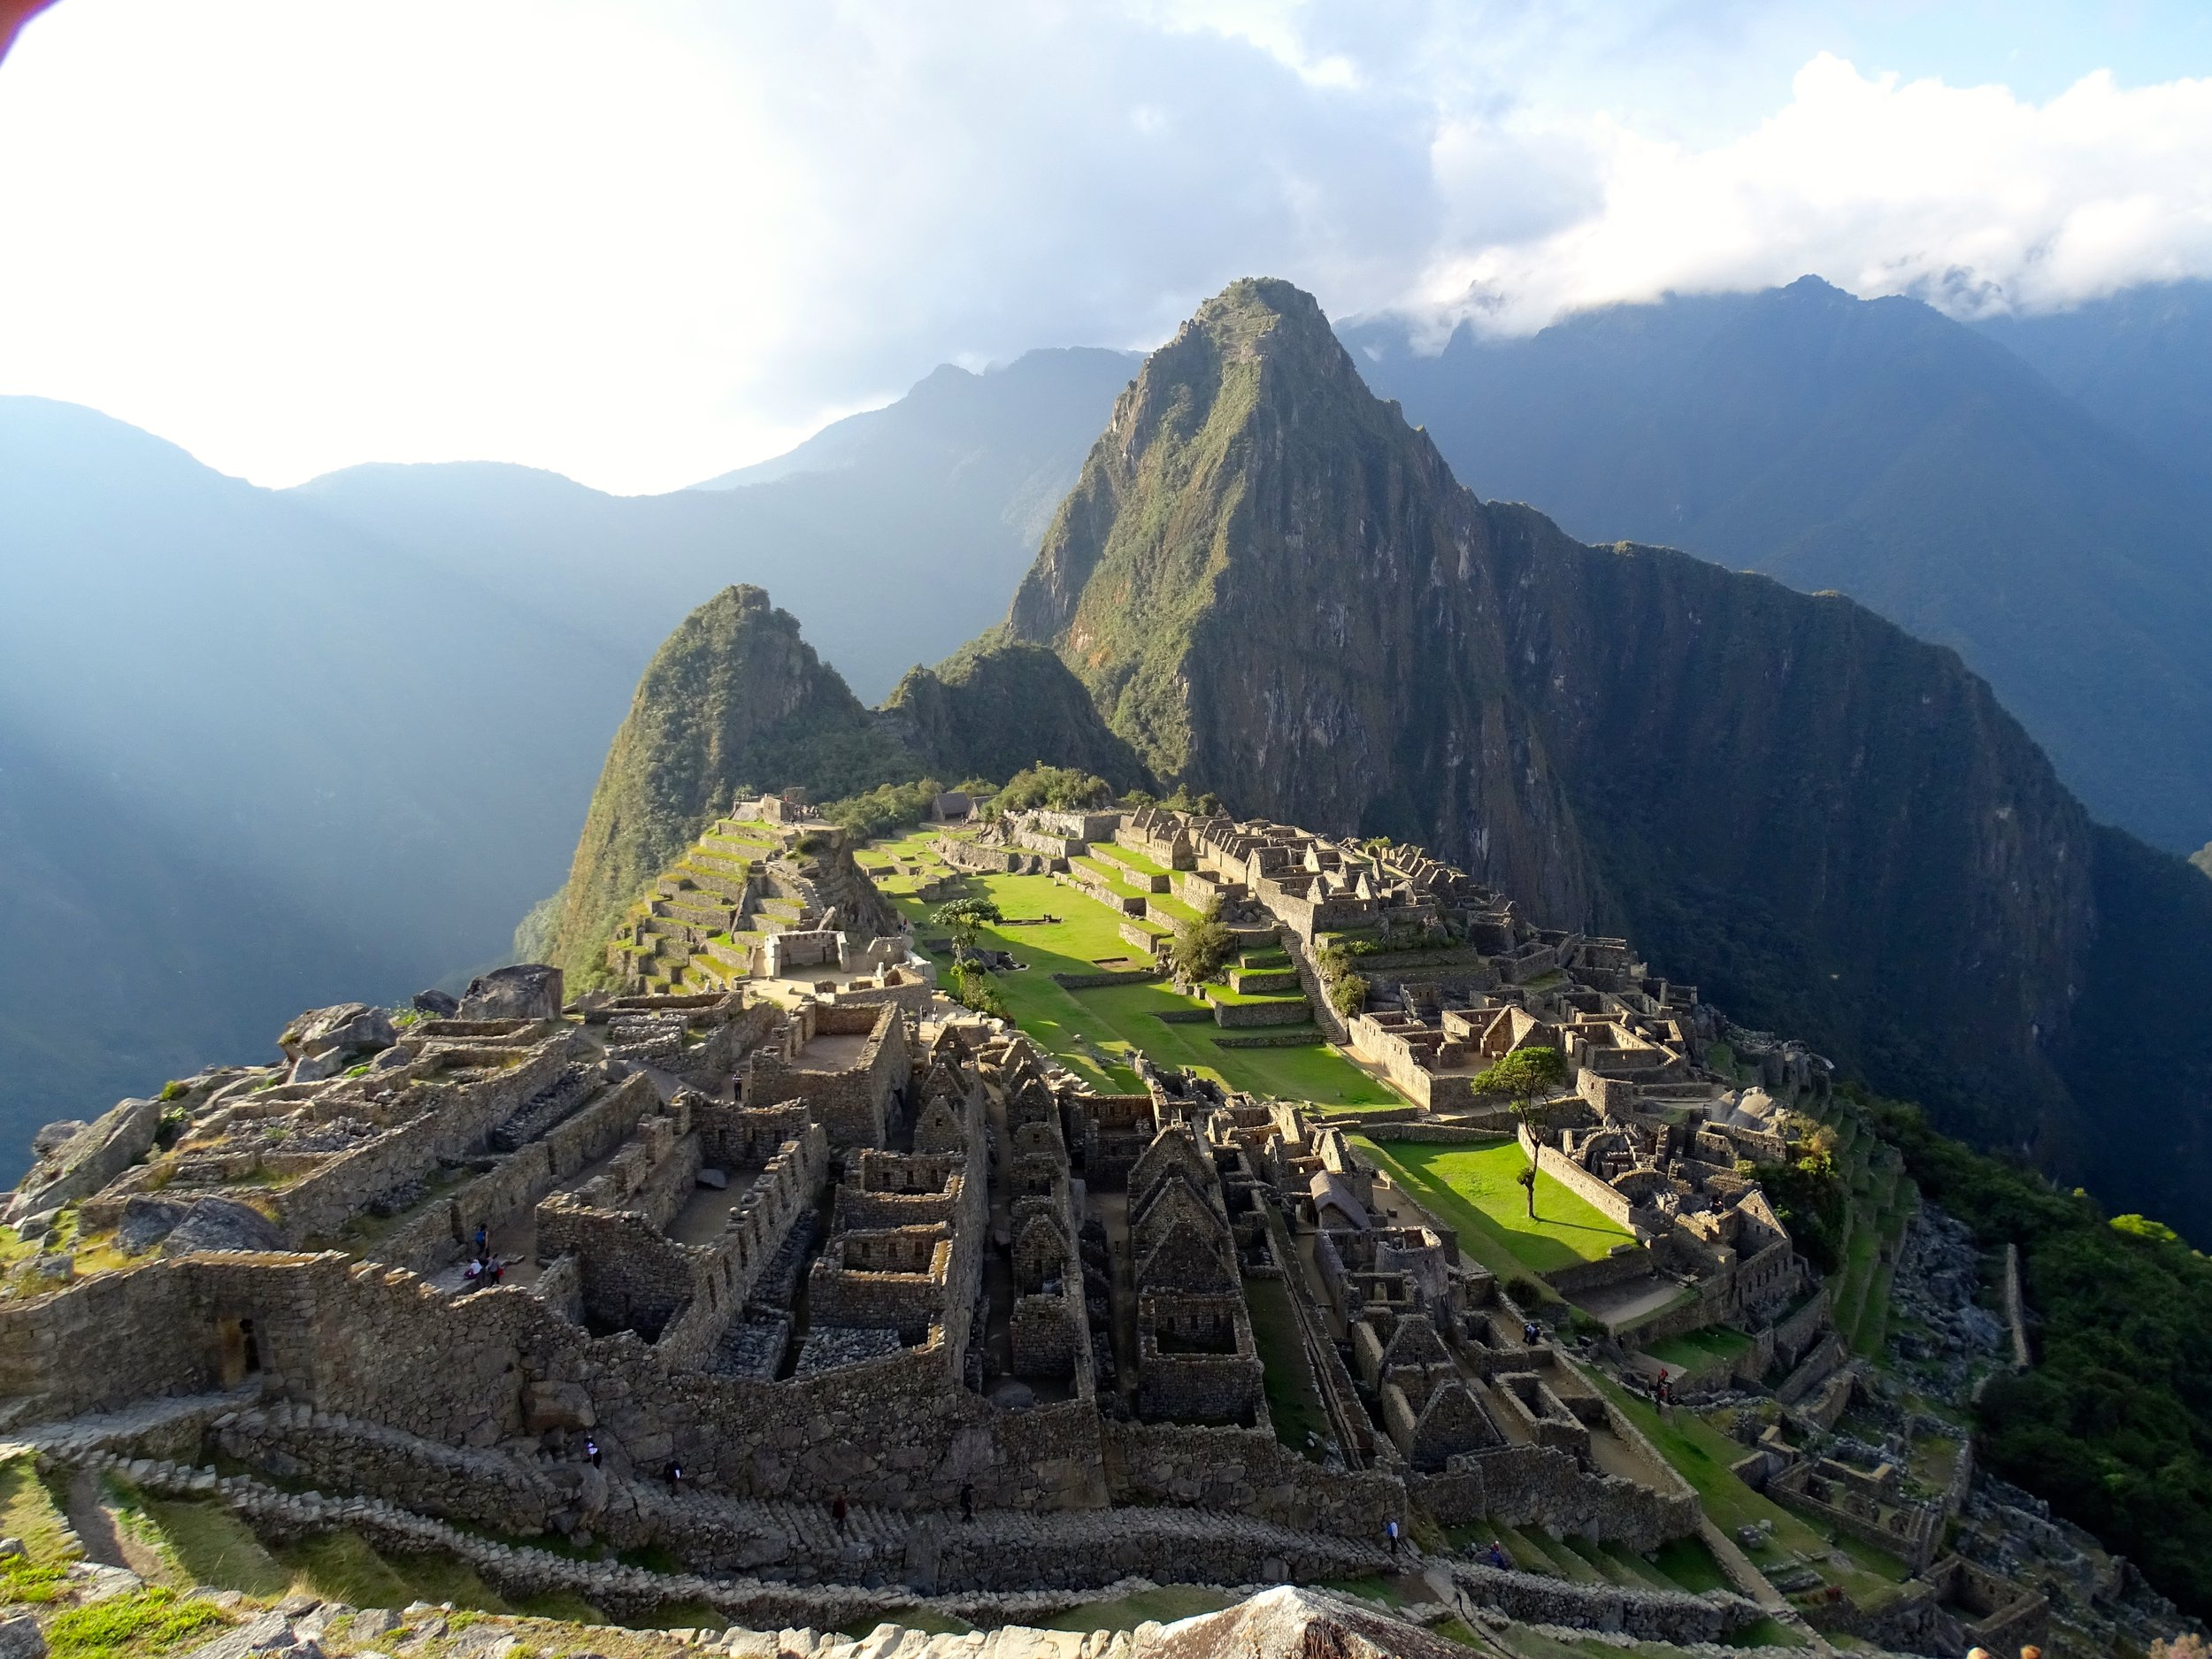 And the classic view of Machu Picchu emerged!